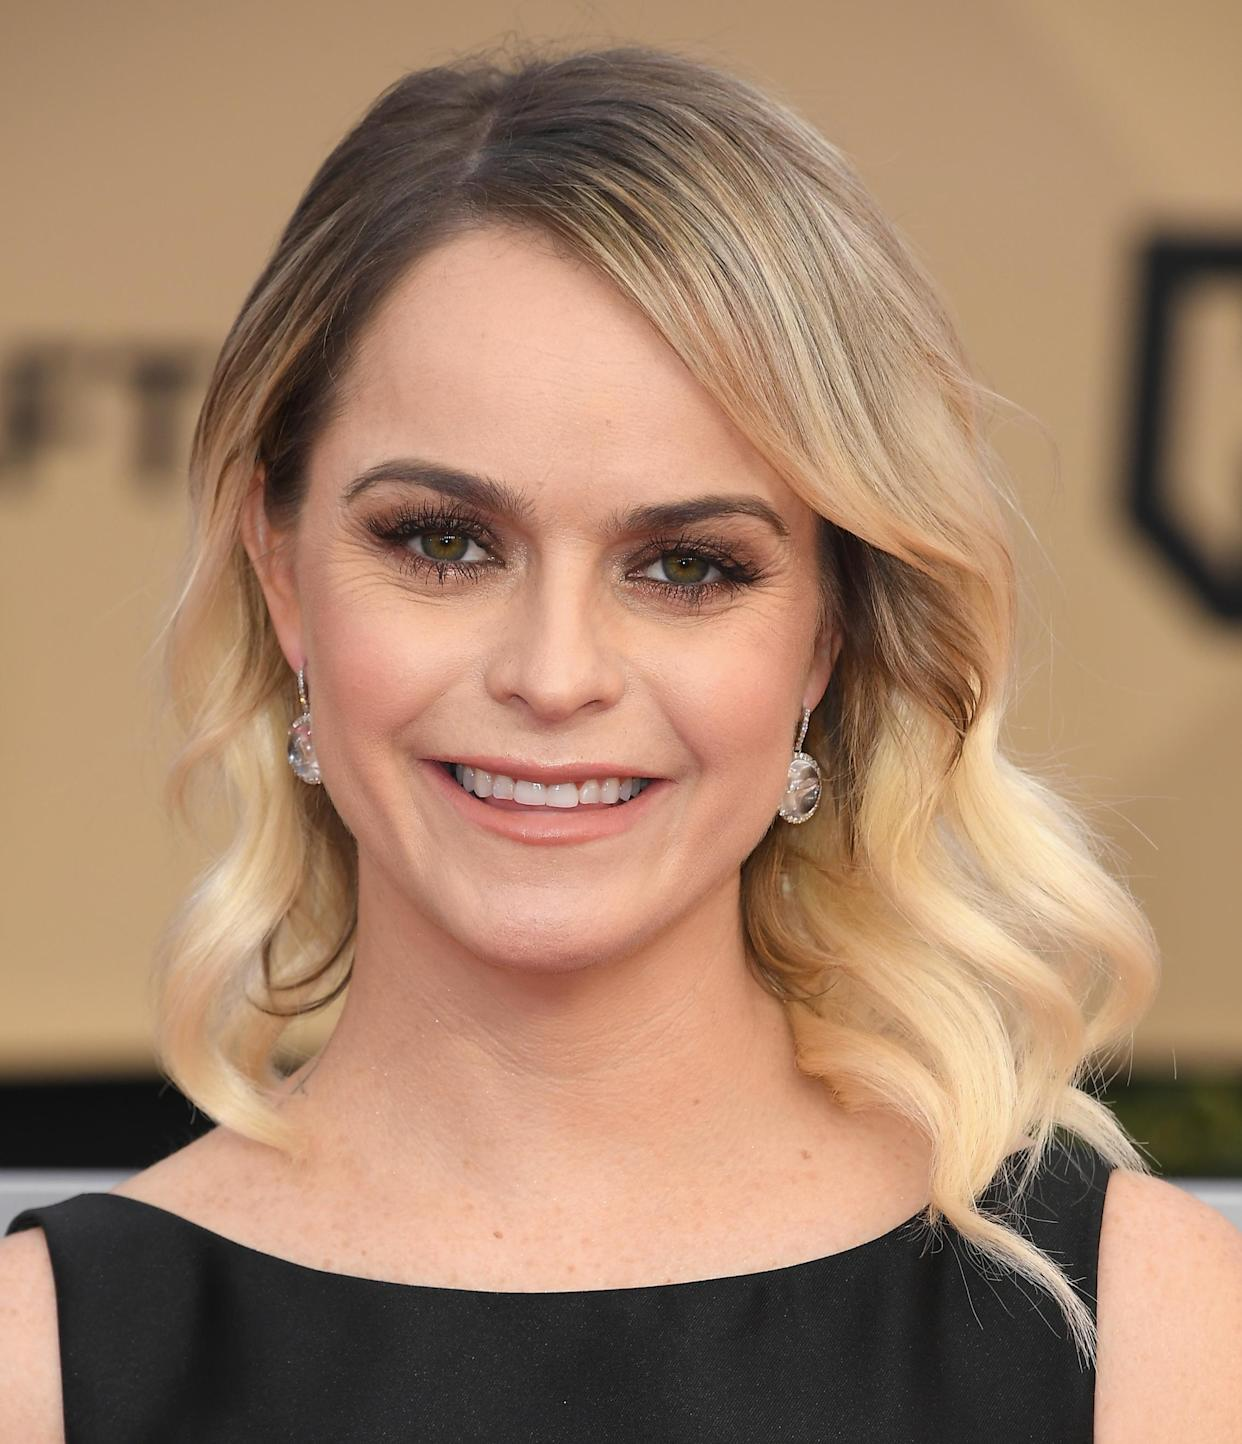 Taryn Manning of OITNB posts cryptic messages online  Taryn Manning o...